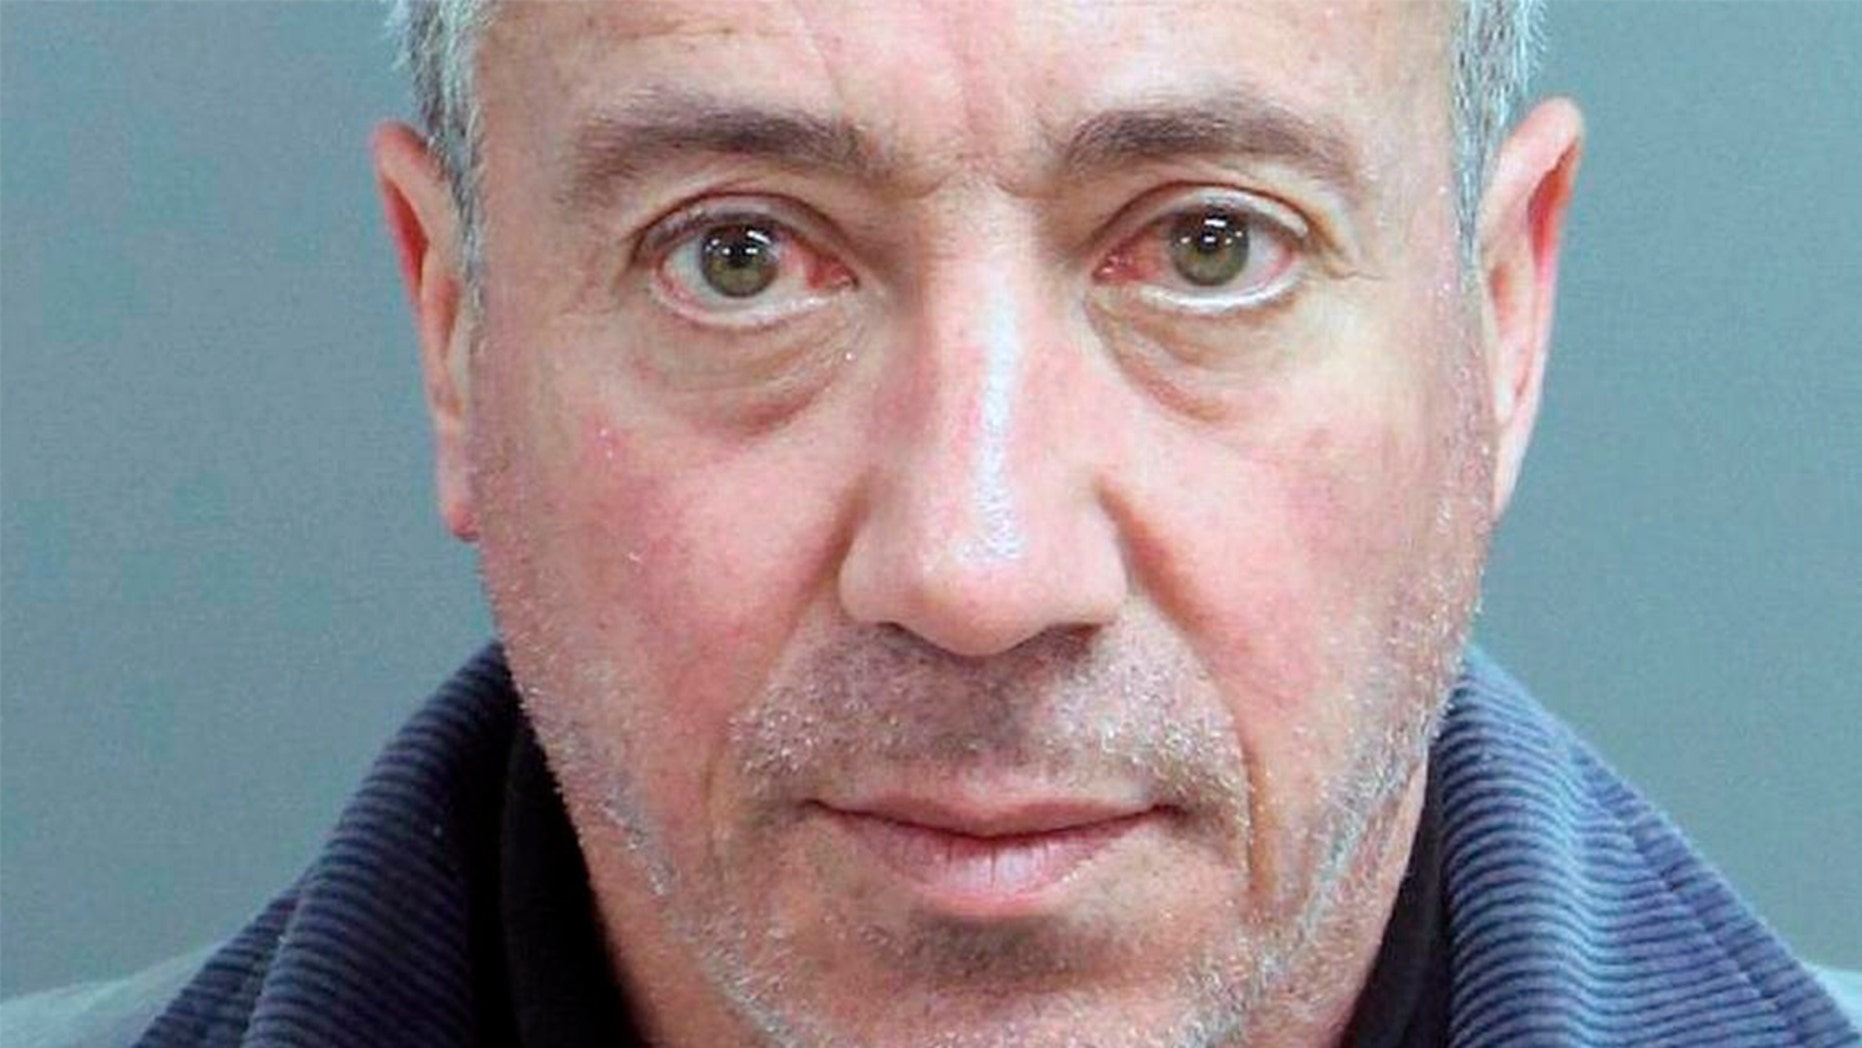 This undated mug shot shows Christian Desgroux, 57, who's accused of pretending to be a U.S. Army general when he landed a chartered helicopter at a technology company in North Carolina in November.